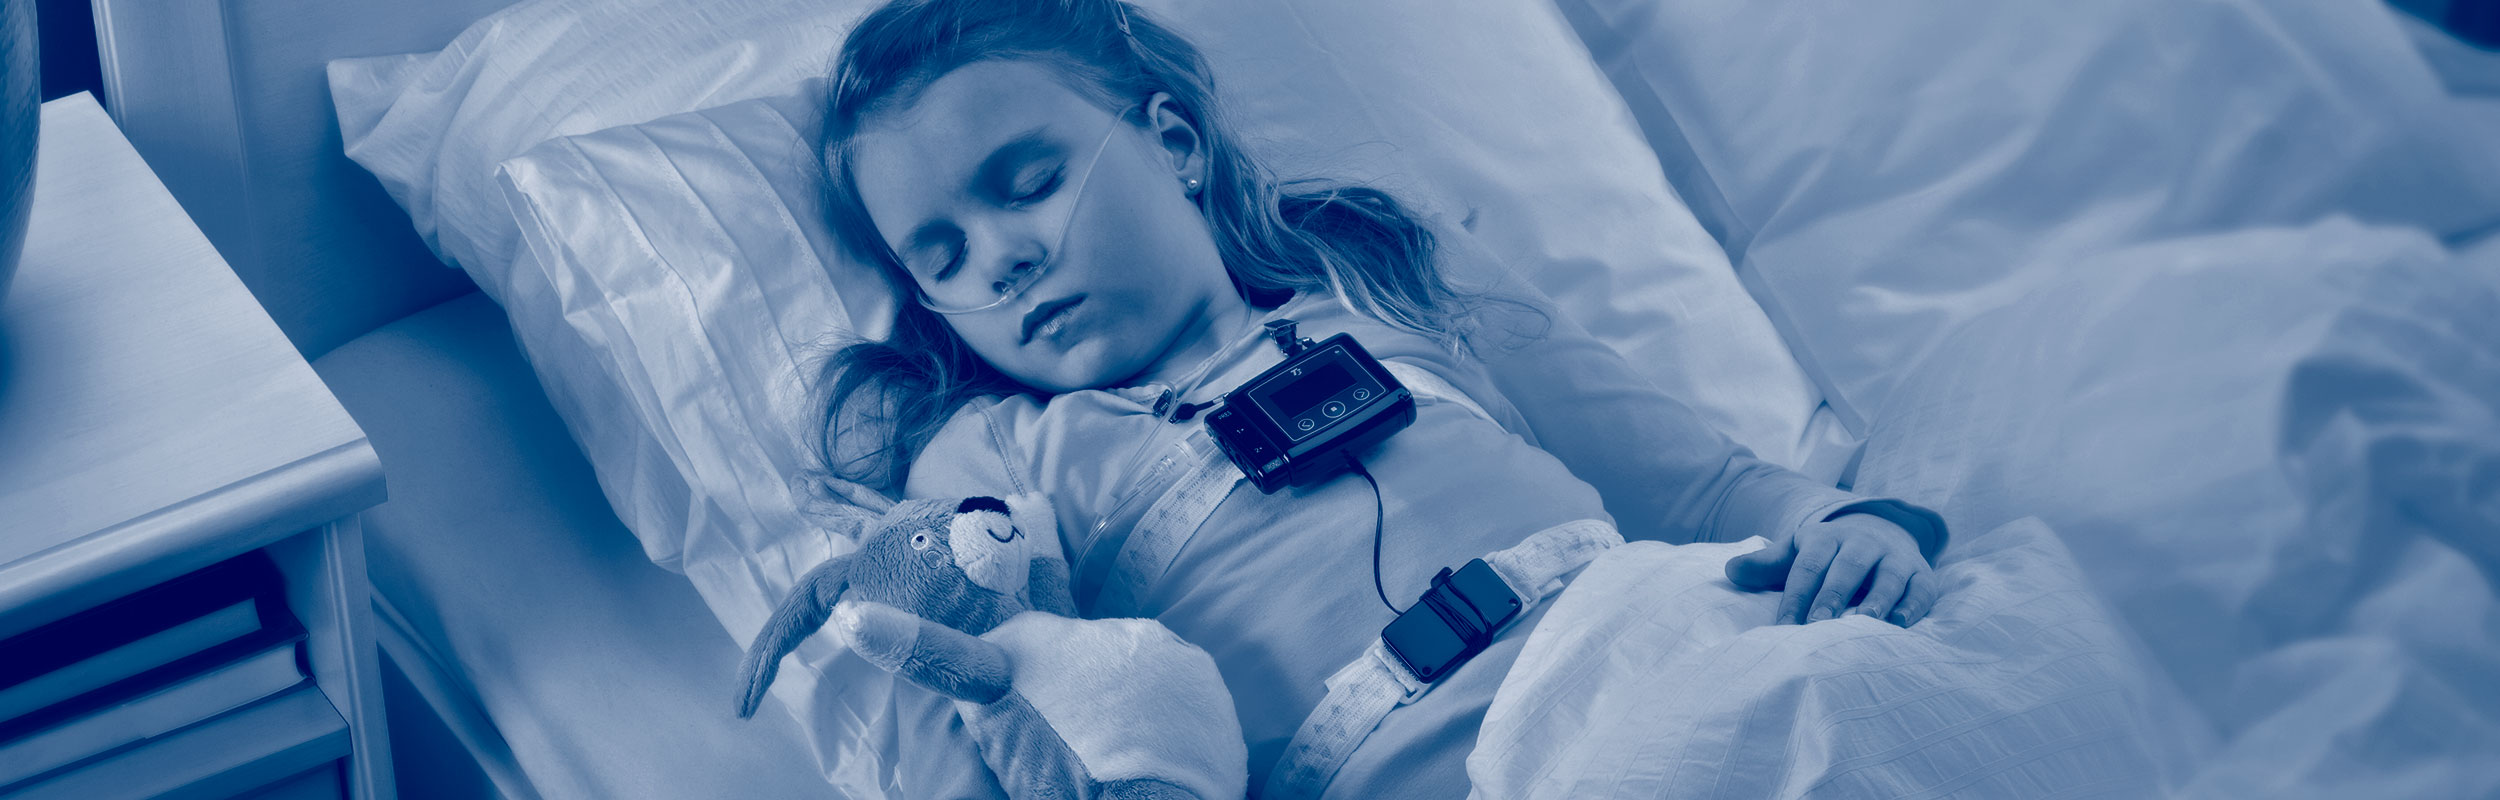 paediatric child sleep study NoxT3